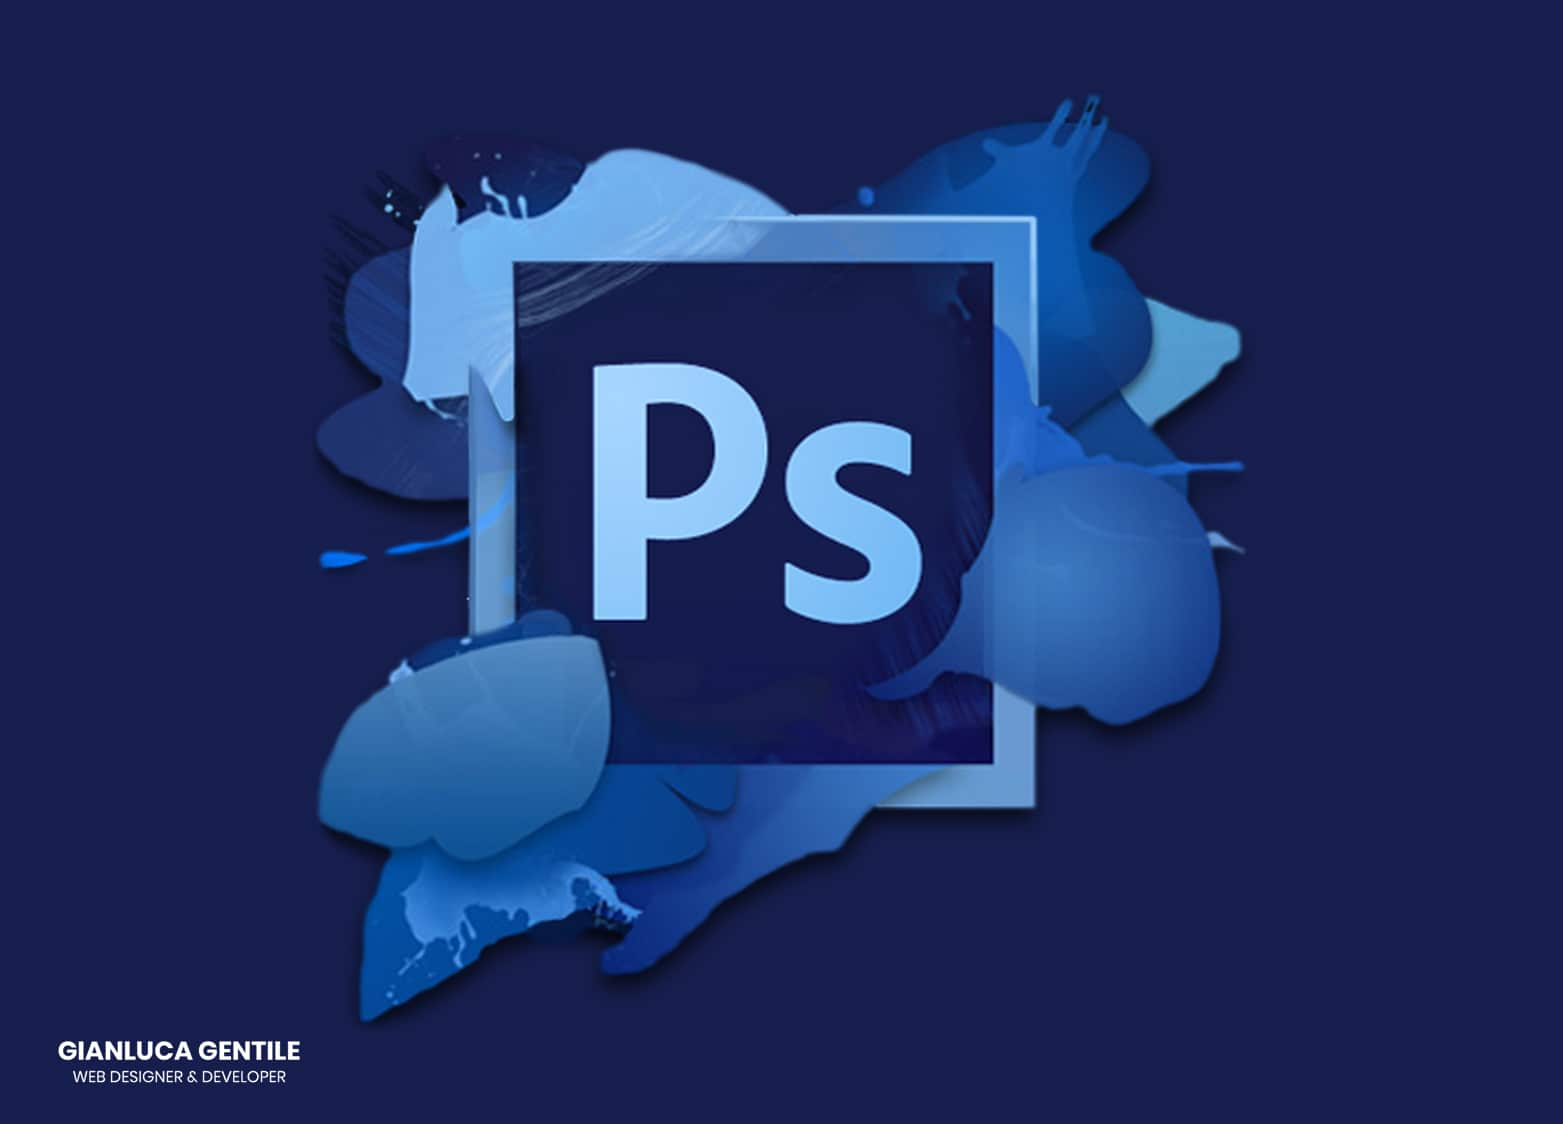 - Photoshop per Blog - Photoshop: Strumento di testo bloccato in BLOC MAIUSC